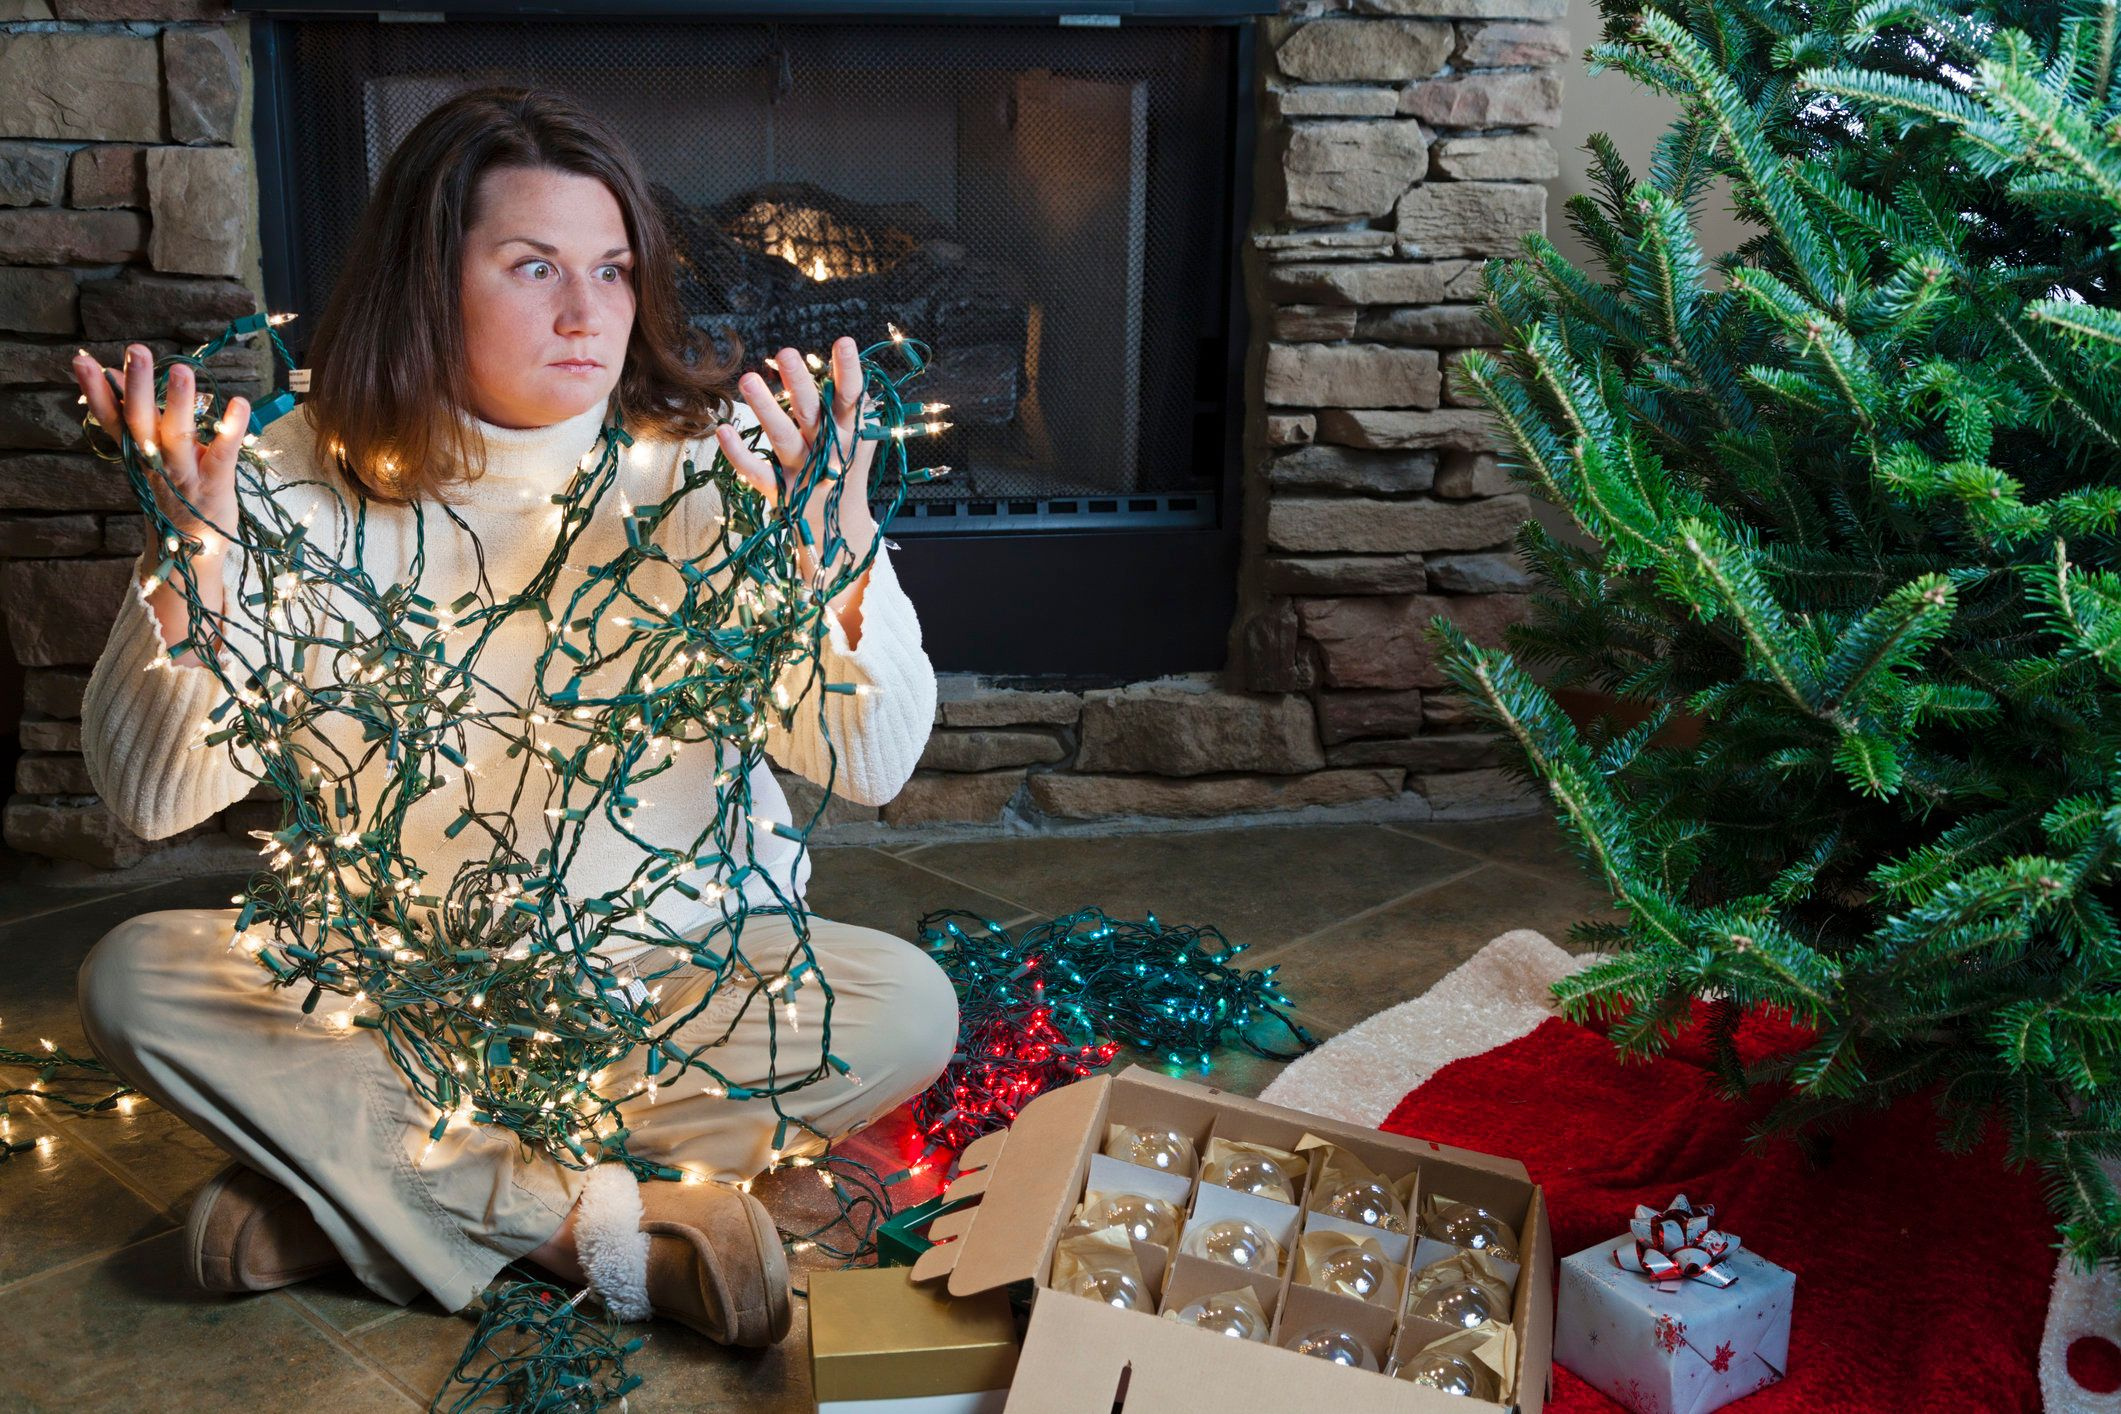 Women Spend A Whopping 23 Hours Completing Chores Ahead Of Christmas